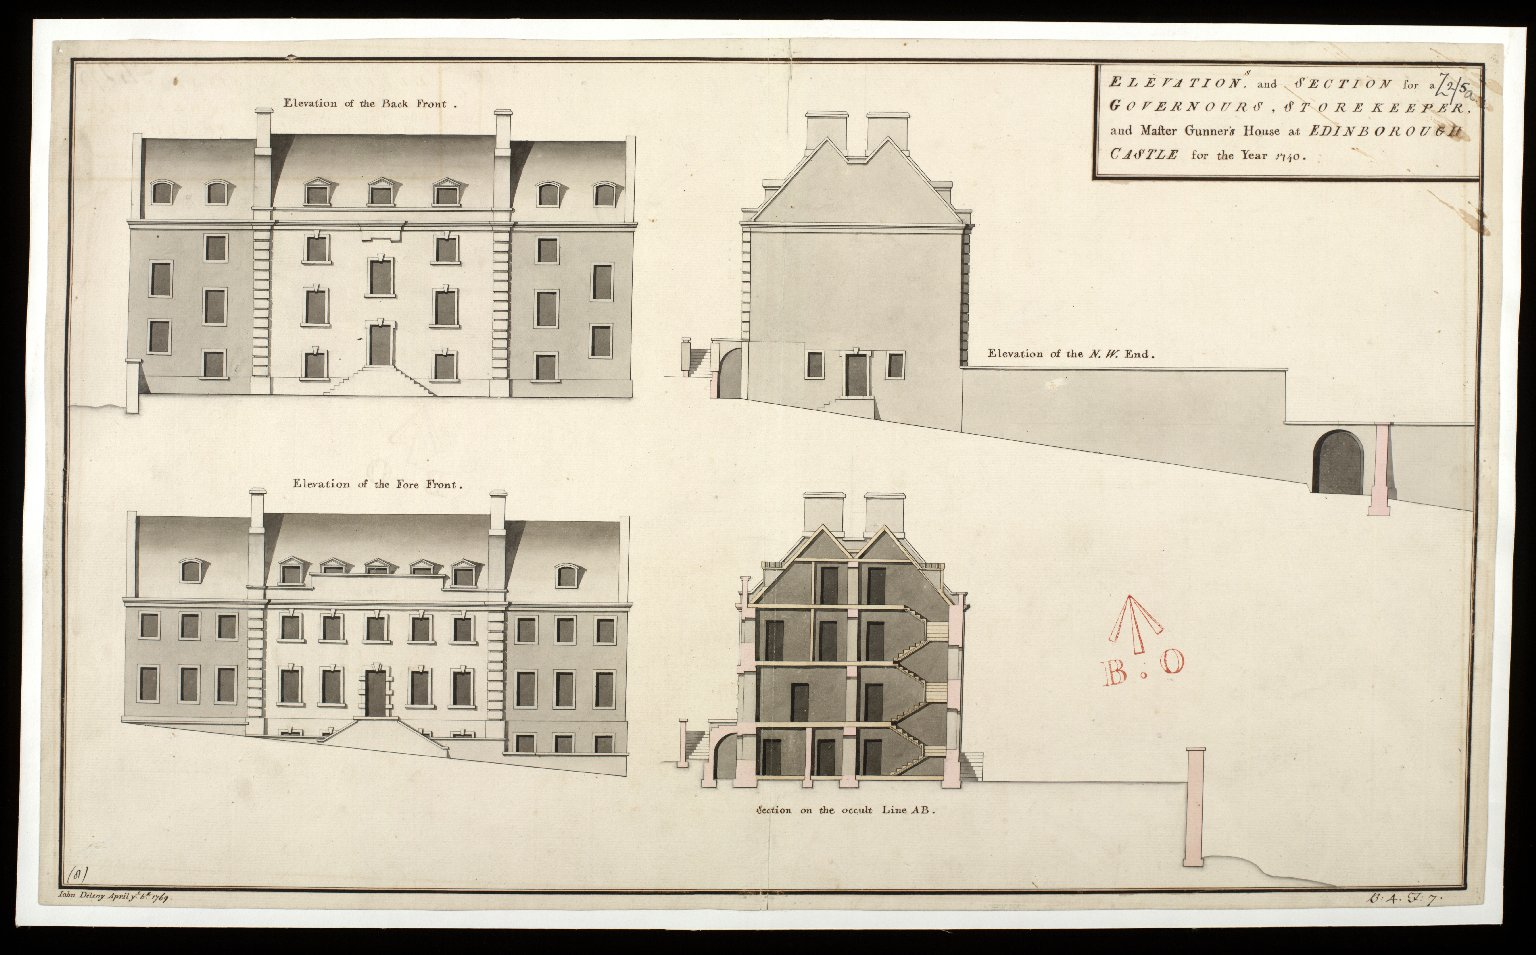 Elevations and section for Governours, storekeeper, and master gunner's house at Edinborough Castle for the year 1740 [1 of 1]